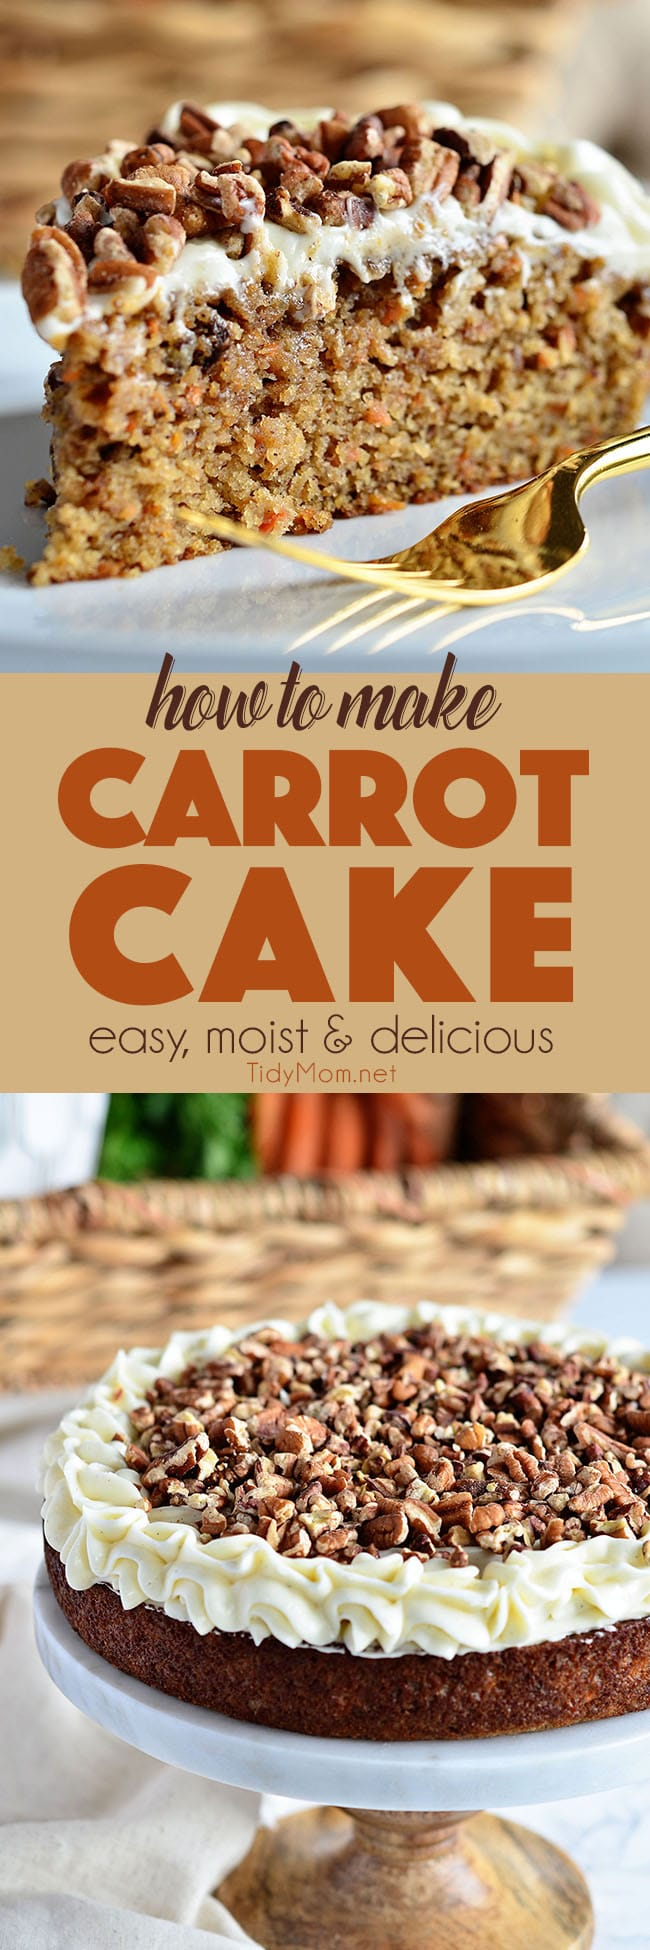 Get all the TIPS on how to make THE BEST HOMEMADE CARROT CAKE. An incredibly moist carrot cake recipe with an ultra-creamy cream cheese frosting. Carrot Cake Recipe at TidyMom.net